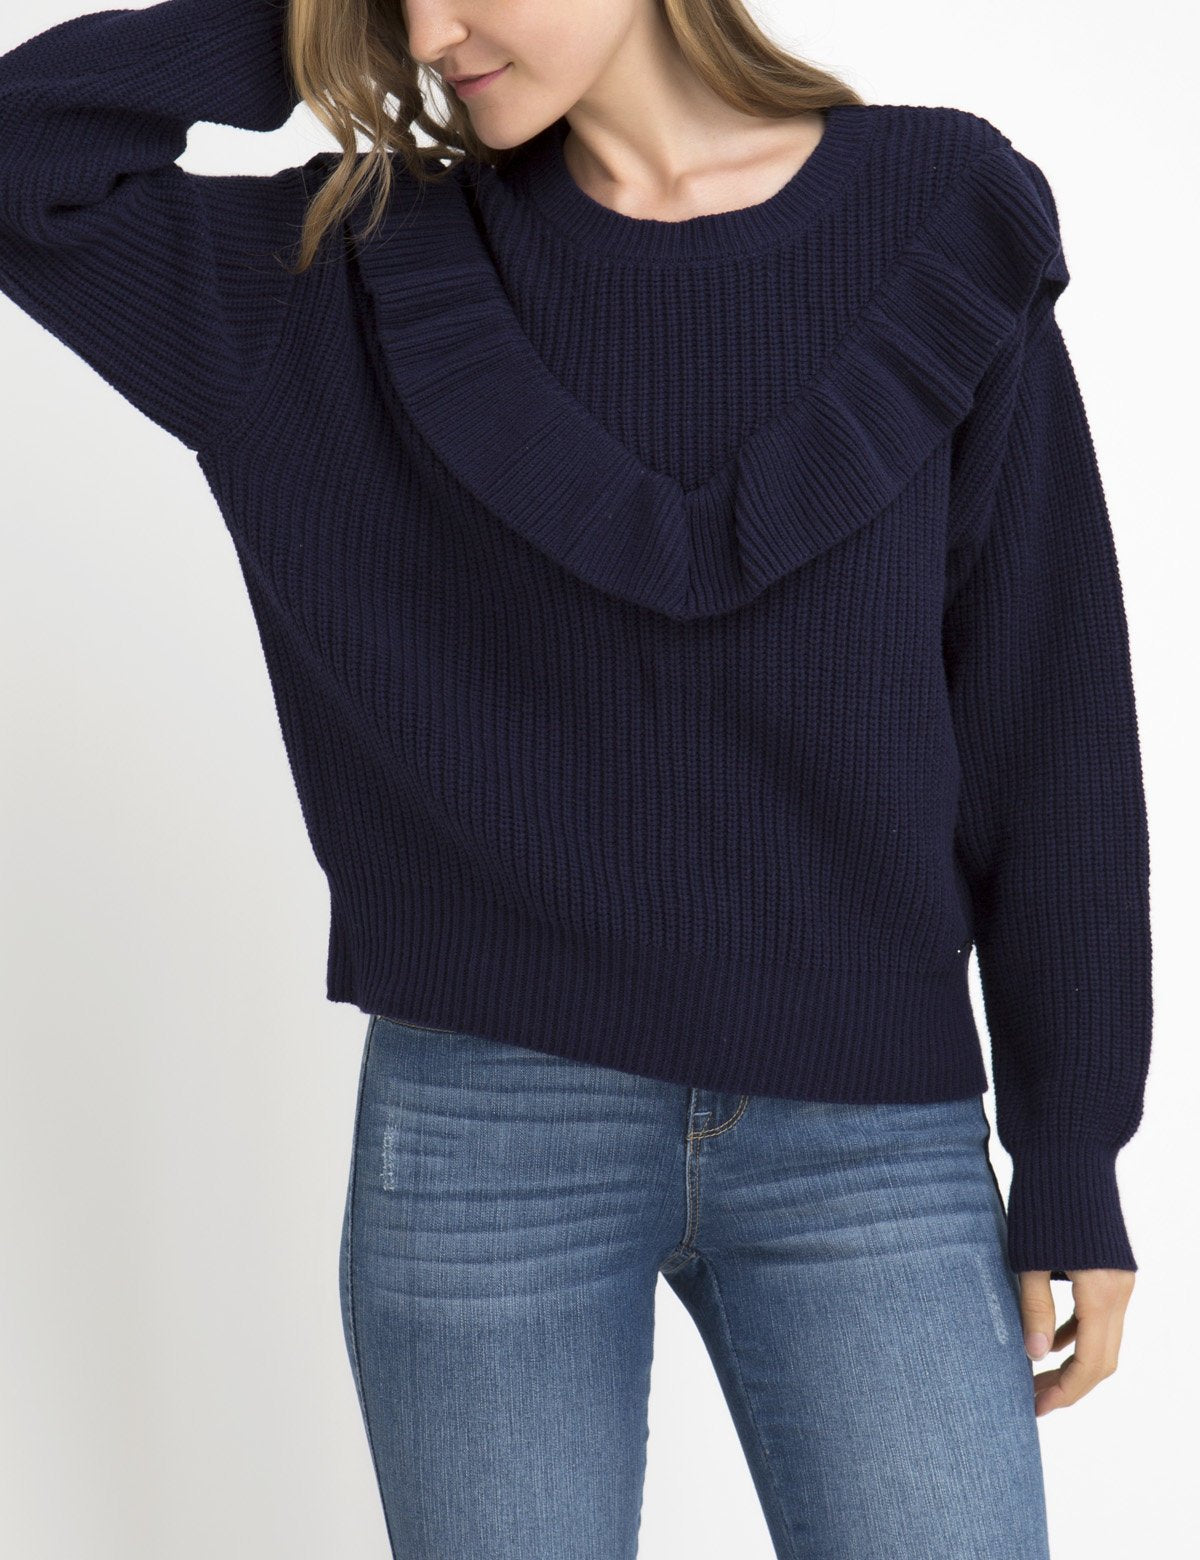 RUFFLE V-NECK SWEATER - U.S. Polo Assn.